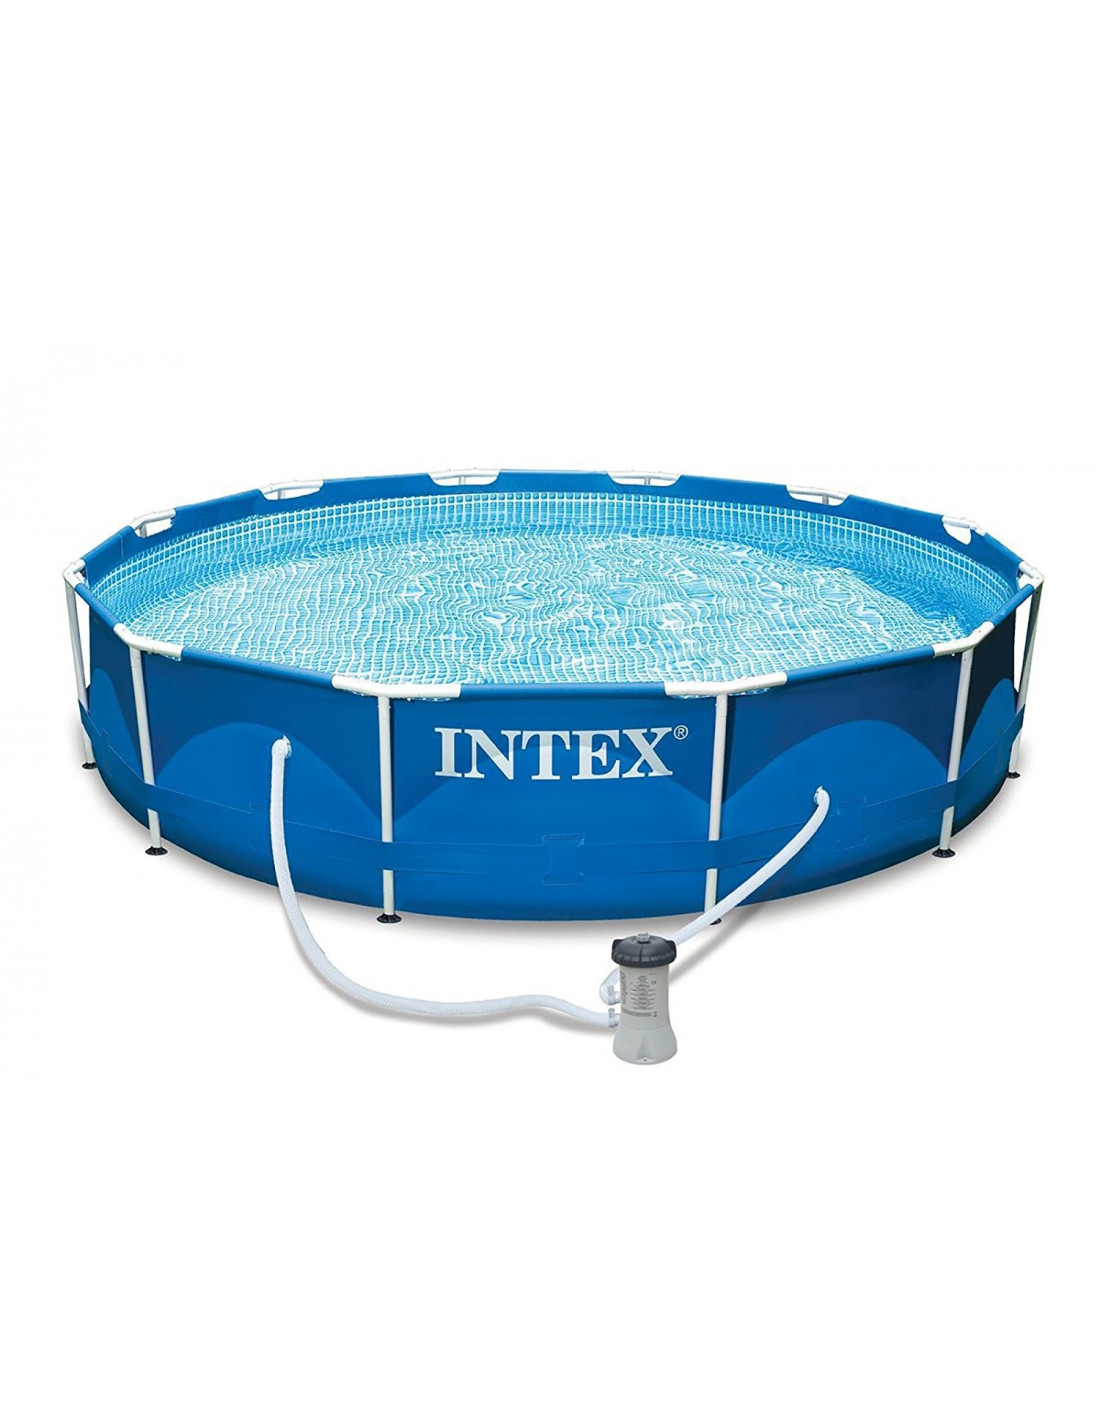 Intex piscine tubulaire ronde metal frame 366 x 76 cm for Montage piscine intex